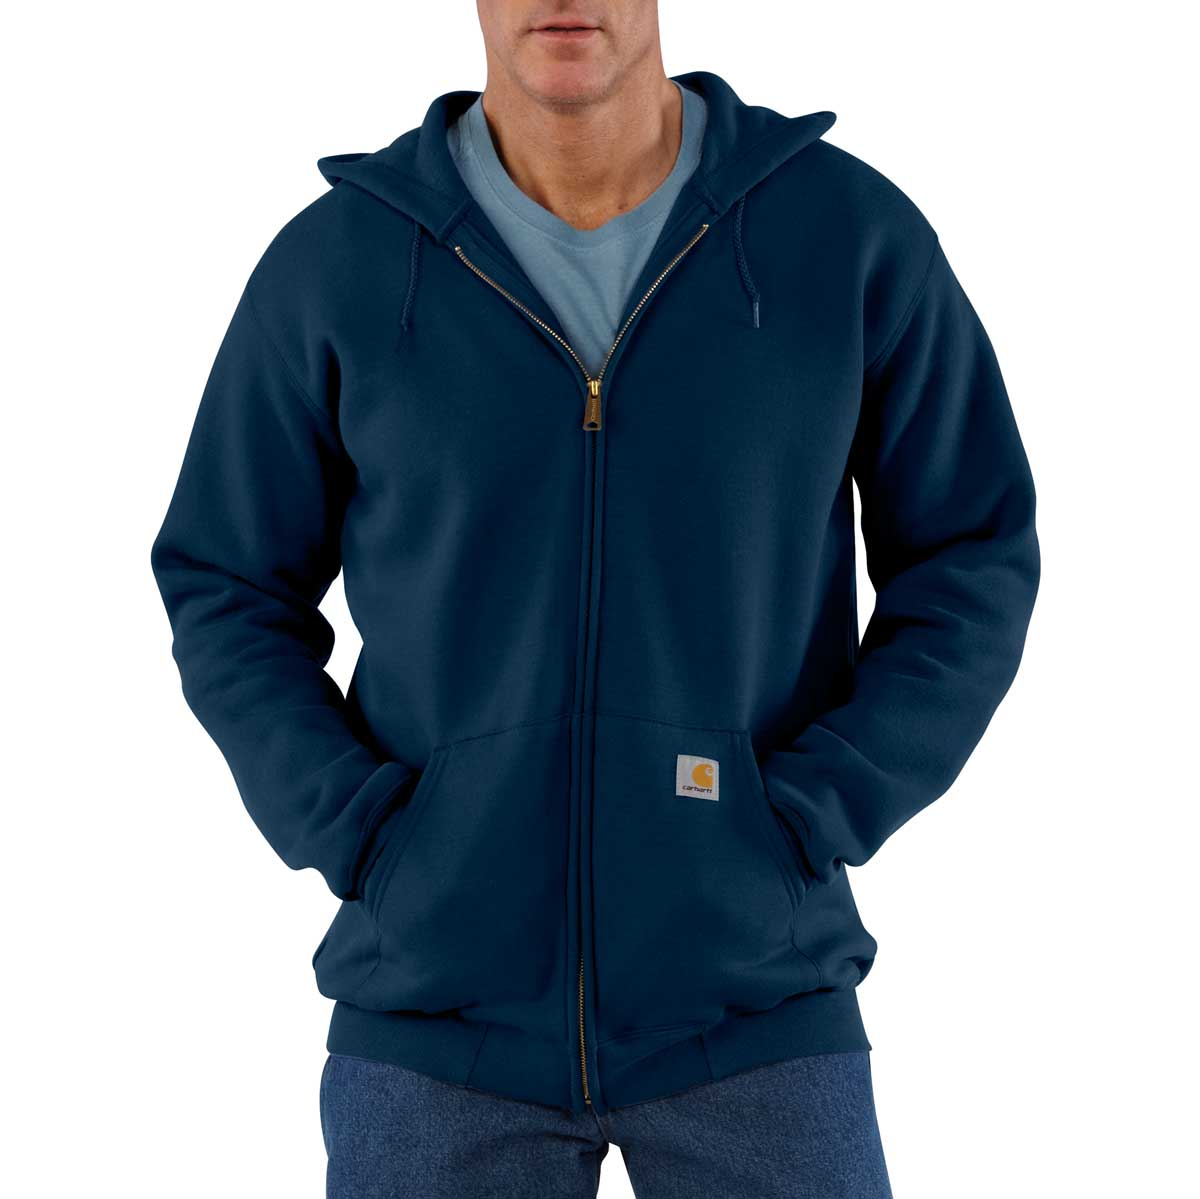 Carhartt K122 Zip-Front Hooded Sweatshirt